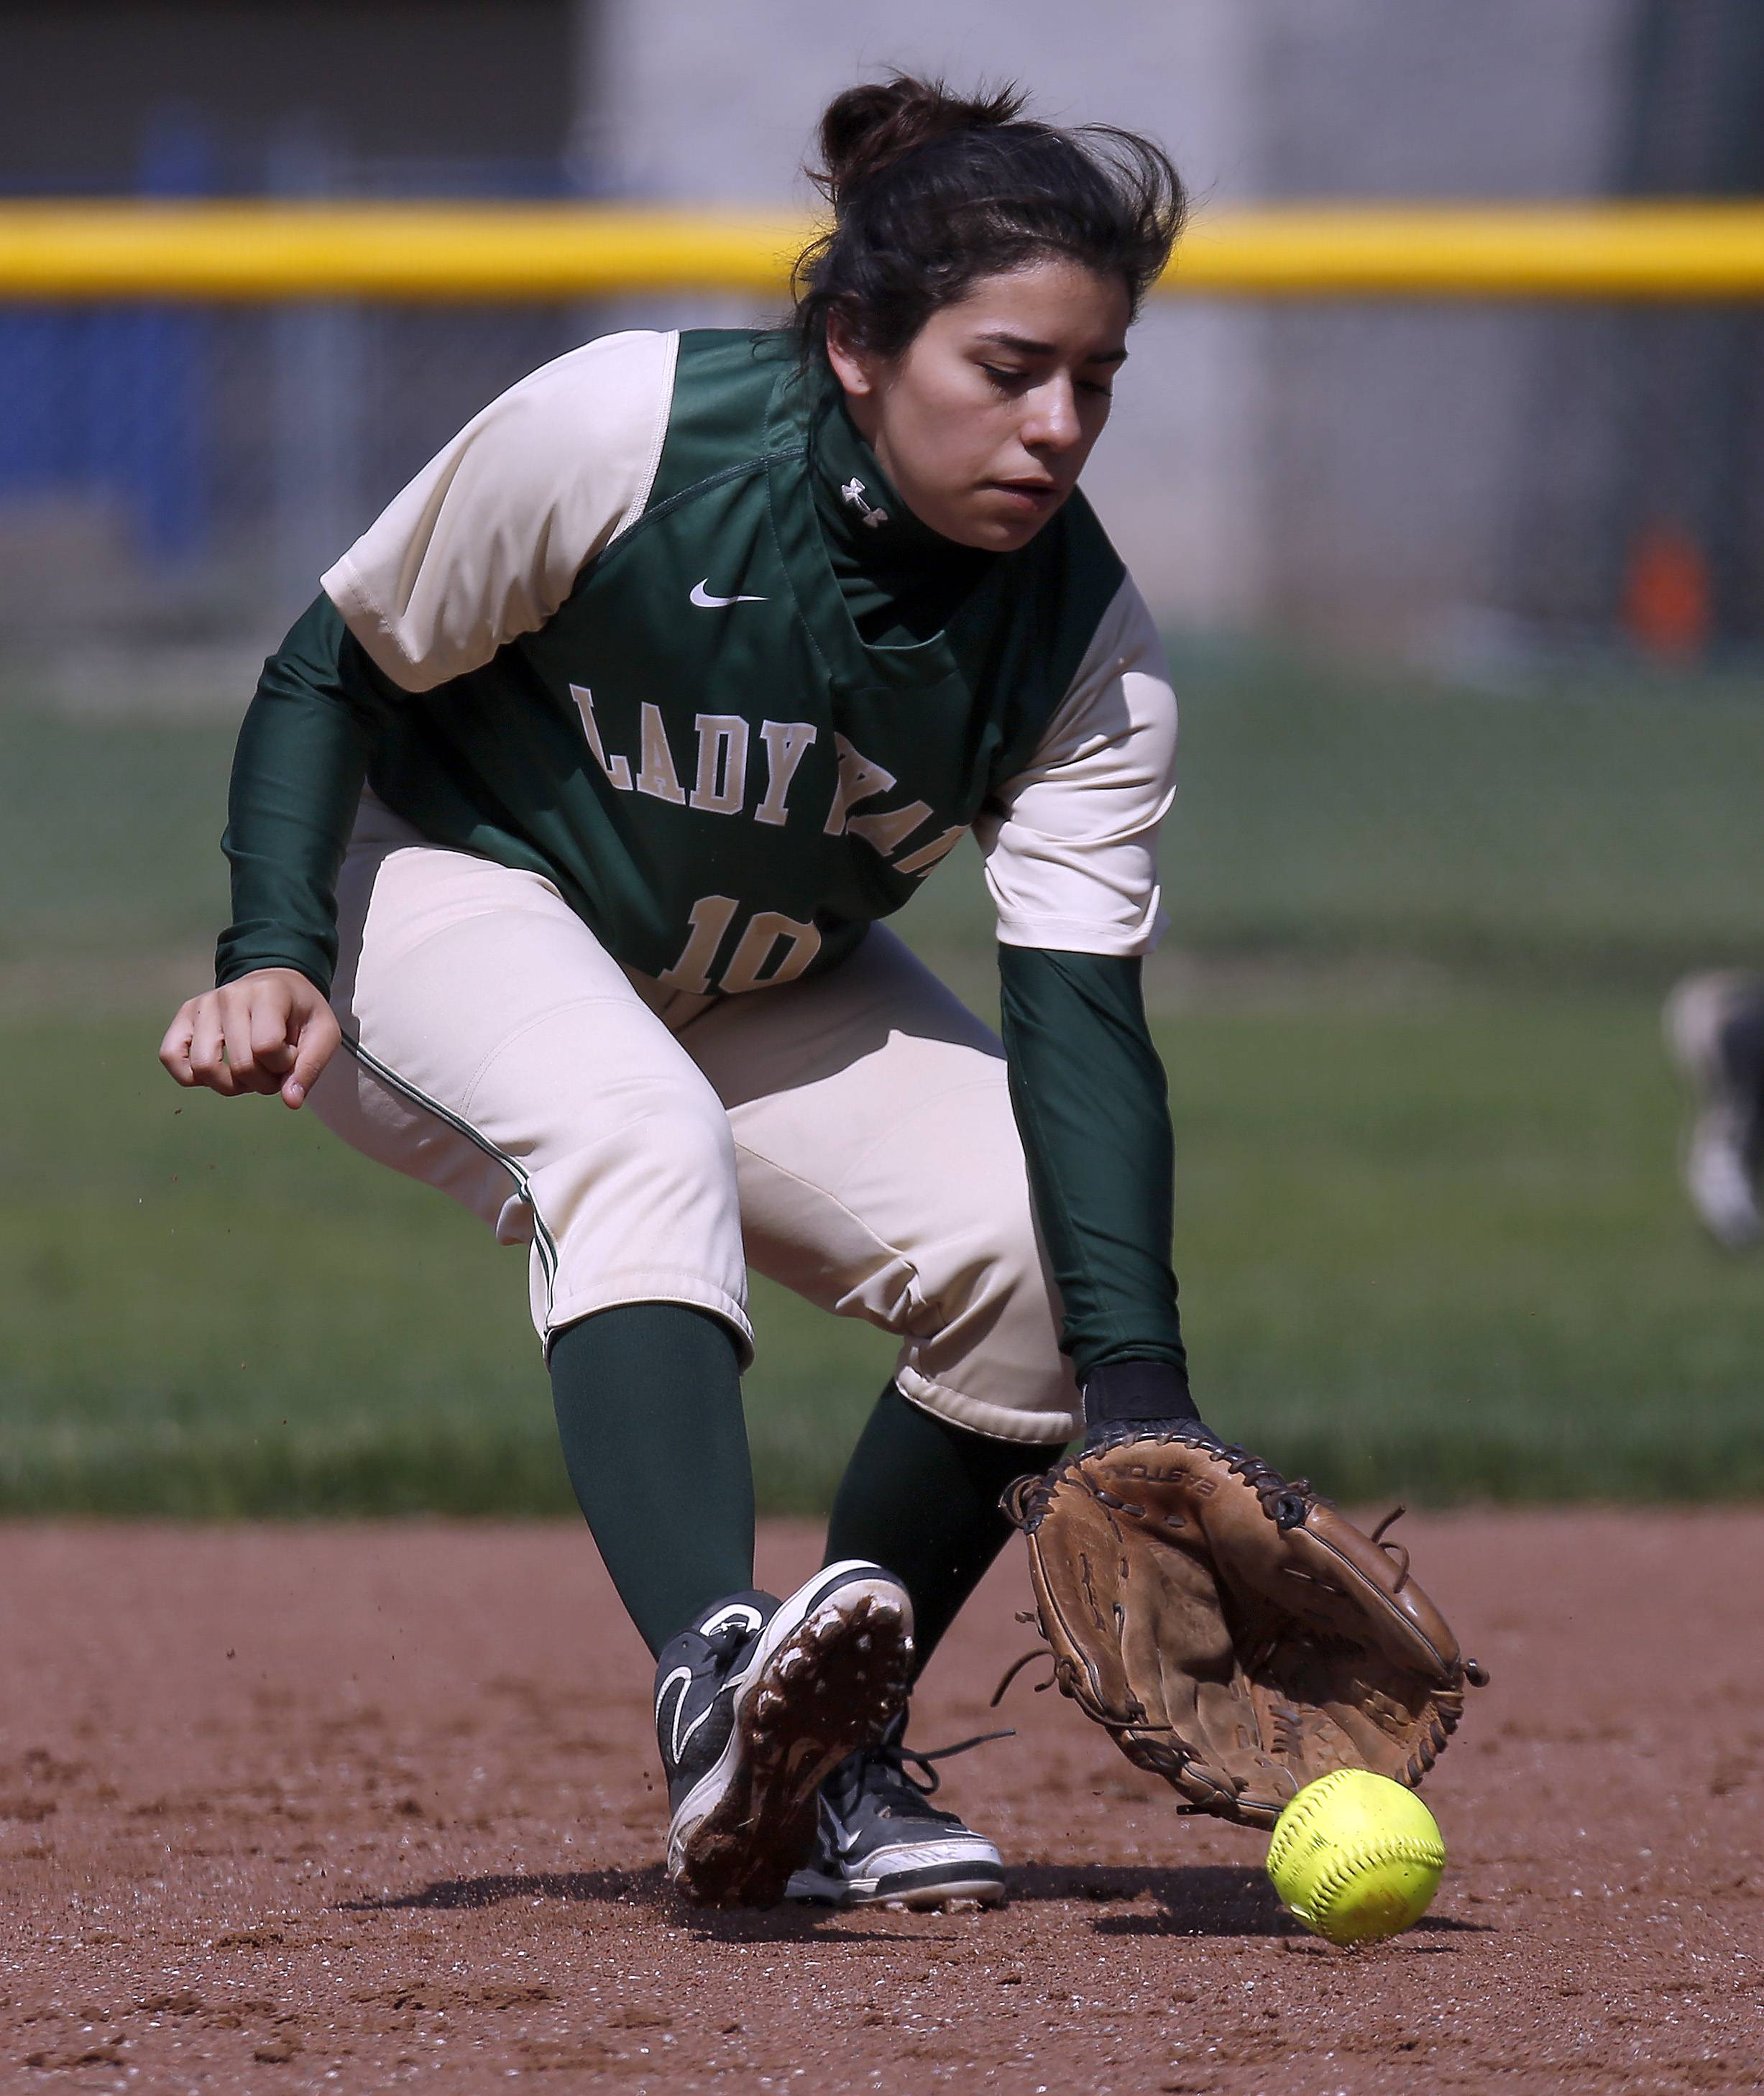 St. Edward second baseman Jasmine Deleon picks up a groundball against Indian Creek at Judson University in Elgin Saturday.